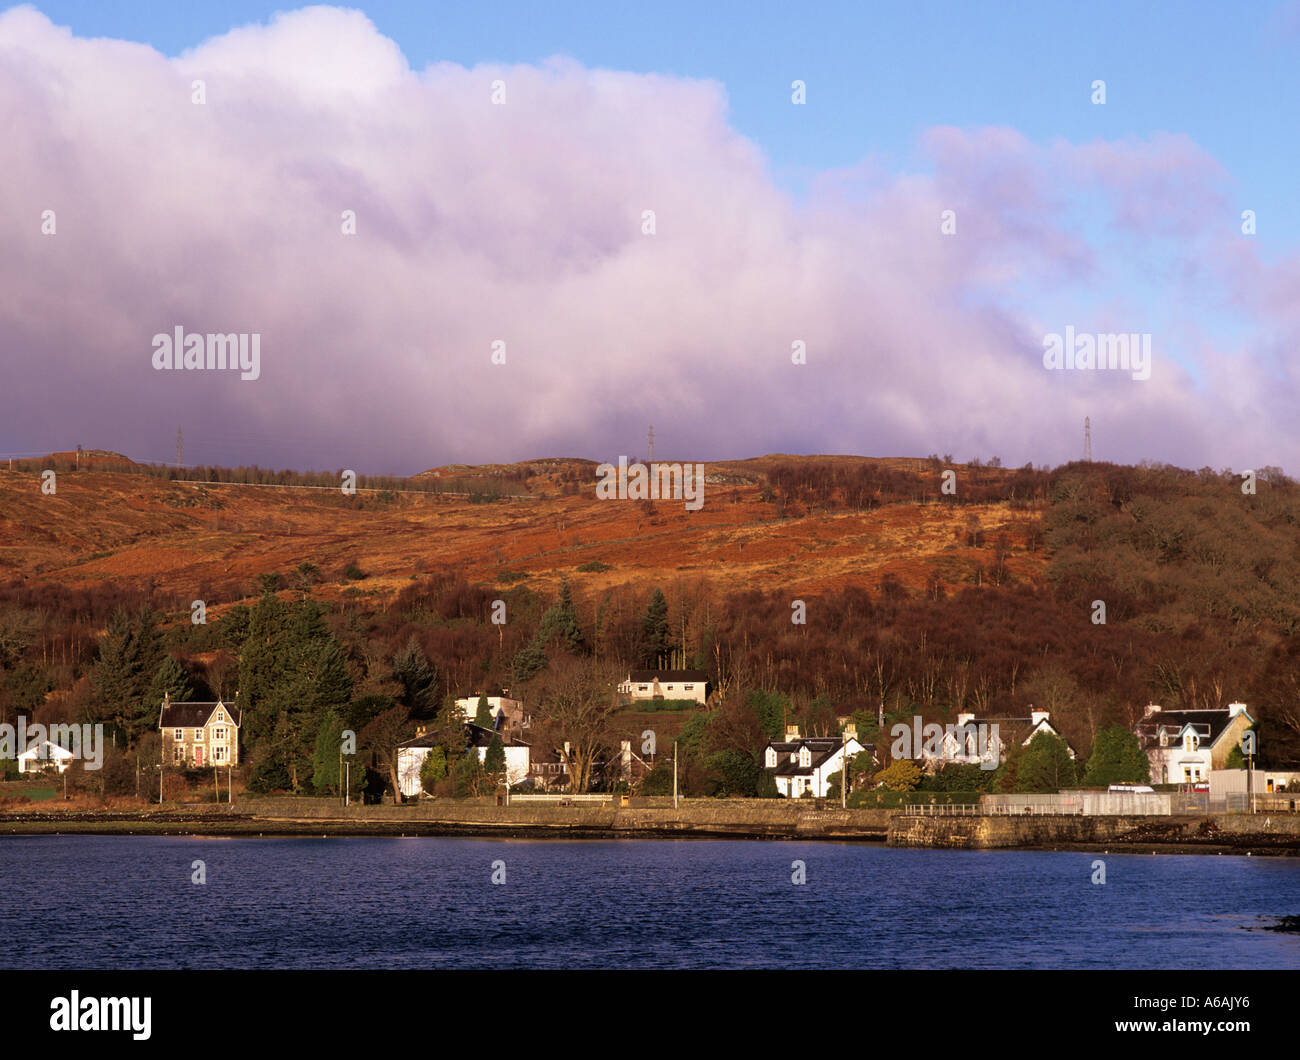 VILLAGE HOUSES on banks of tidal Gare Loch at high tide.  Garelochhead Argyll Bute Scotland UK - Stock Image